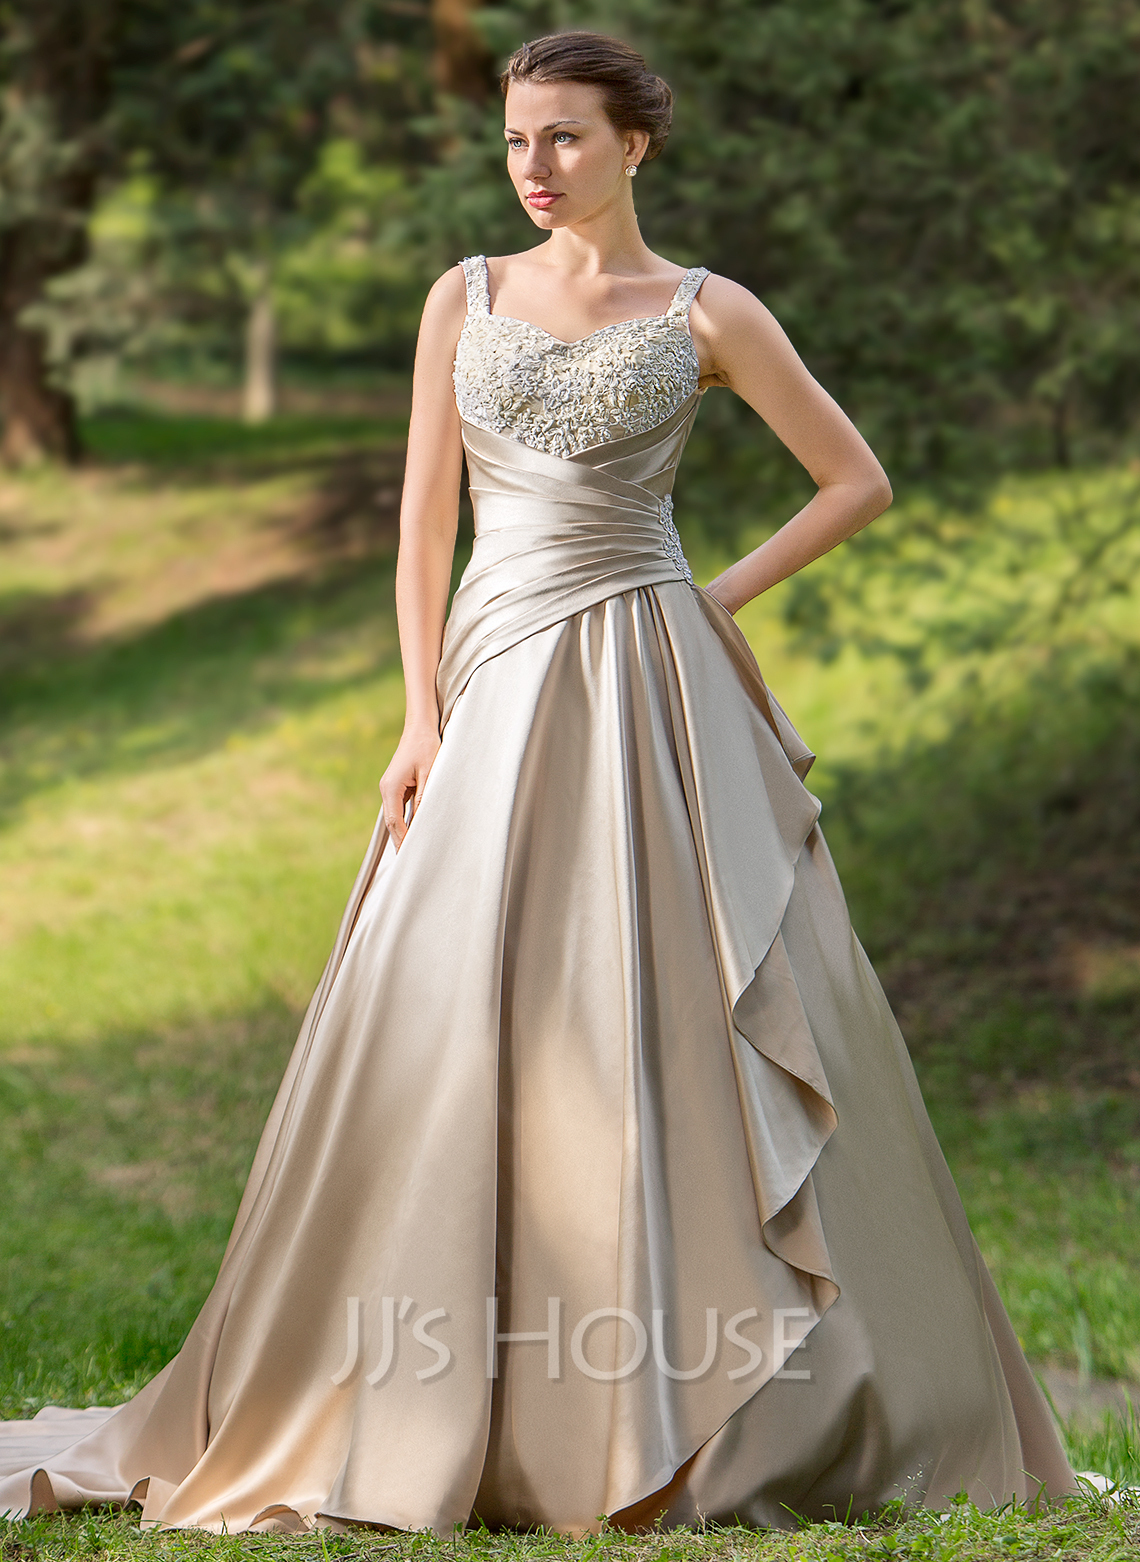 Ball Gown Sweetheart Court Train Satin Wedding Dress With Ruffle Beading Appliques Lace Cascading Ruffles g wedding dresses in color Home Wedding Dresses Loading zoom